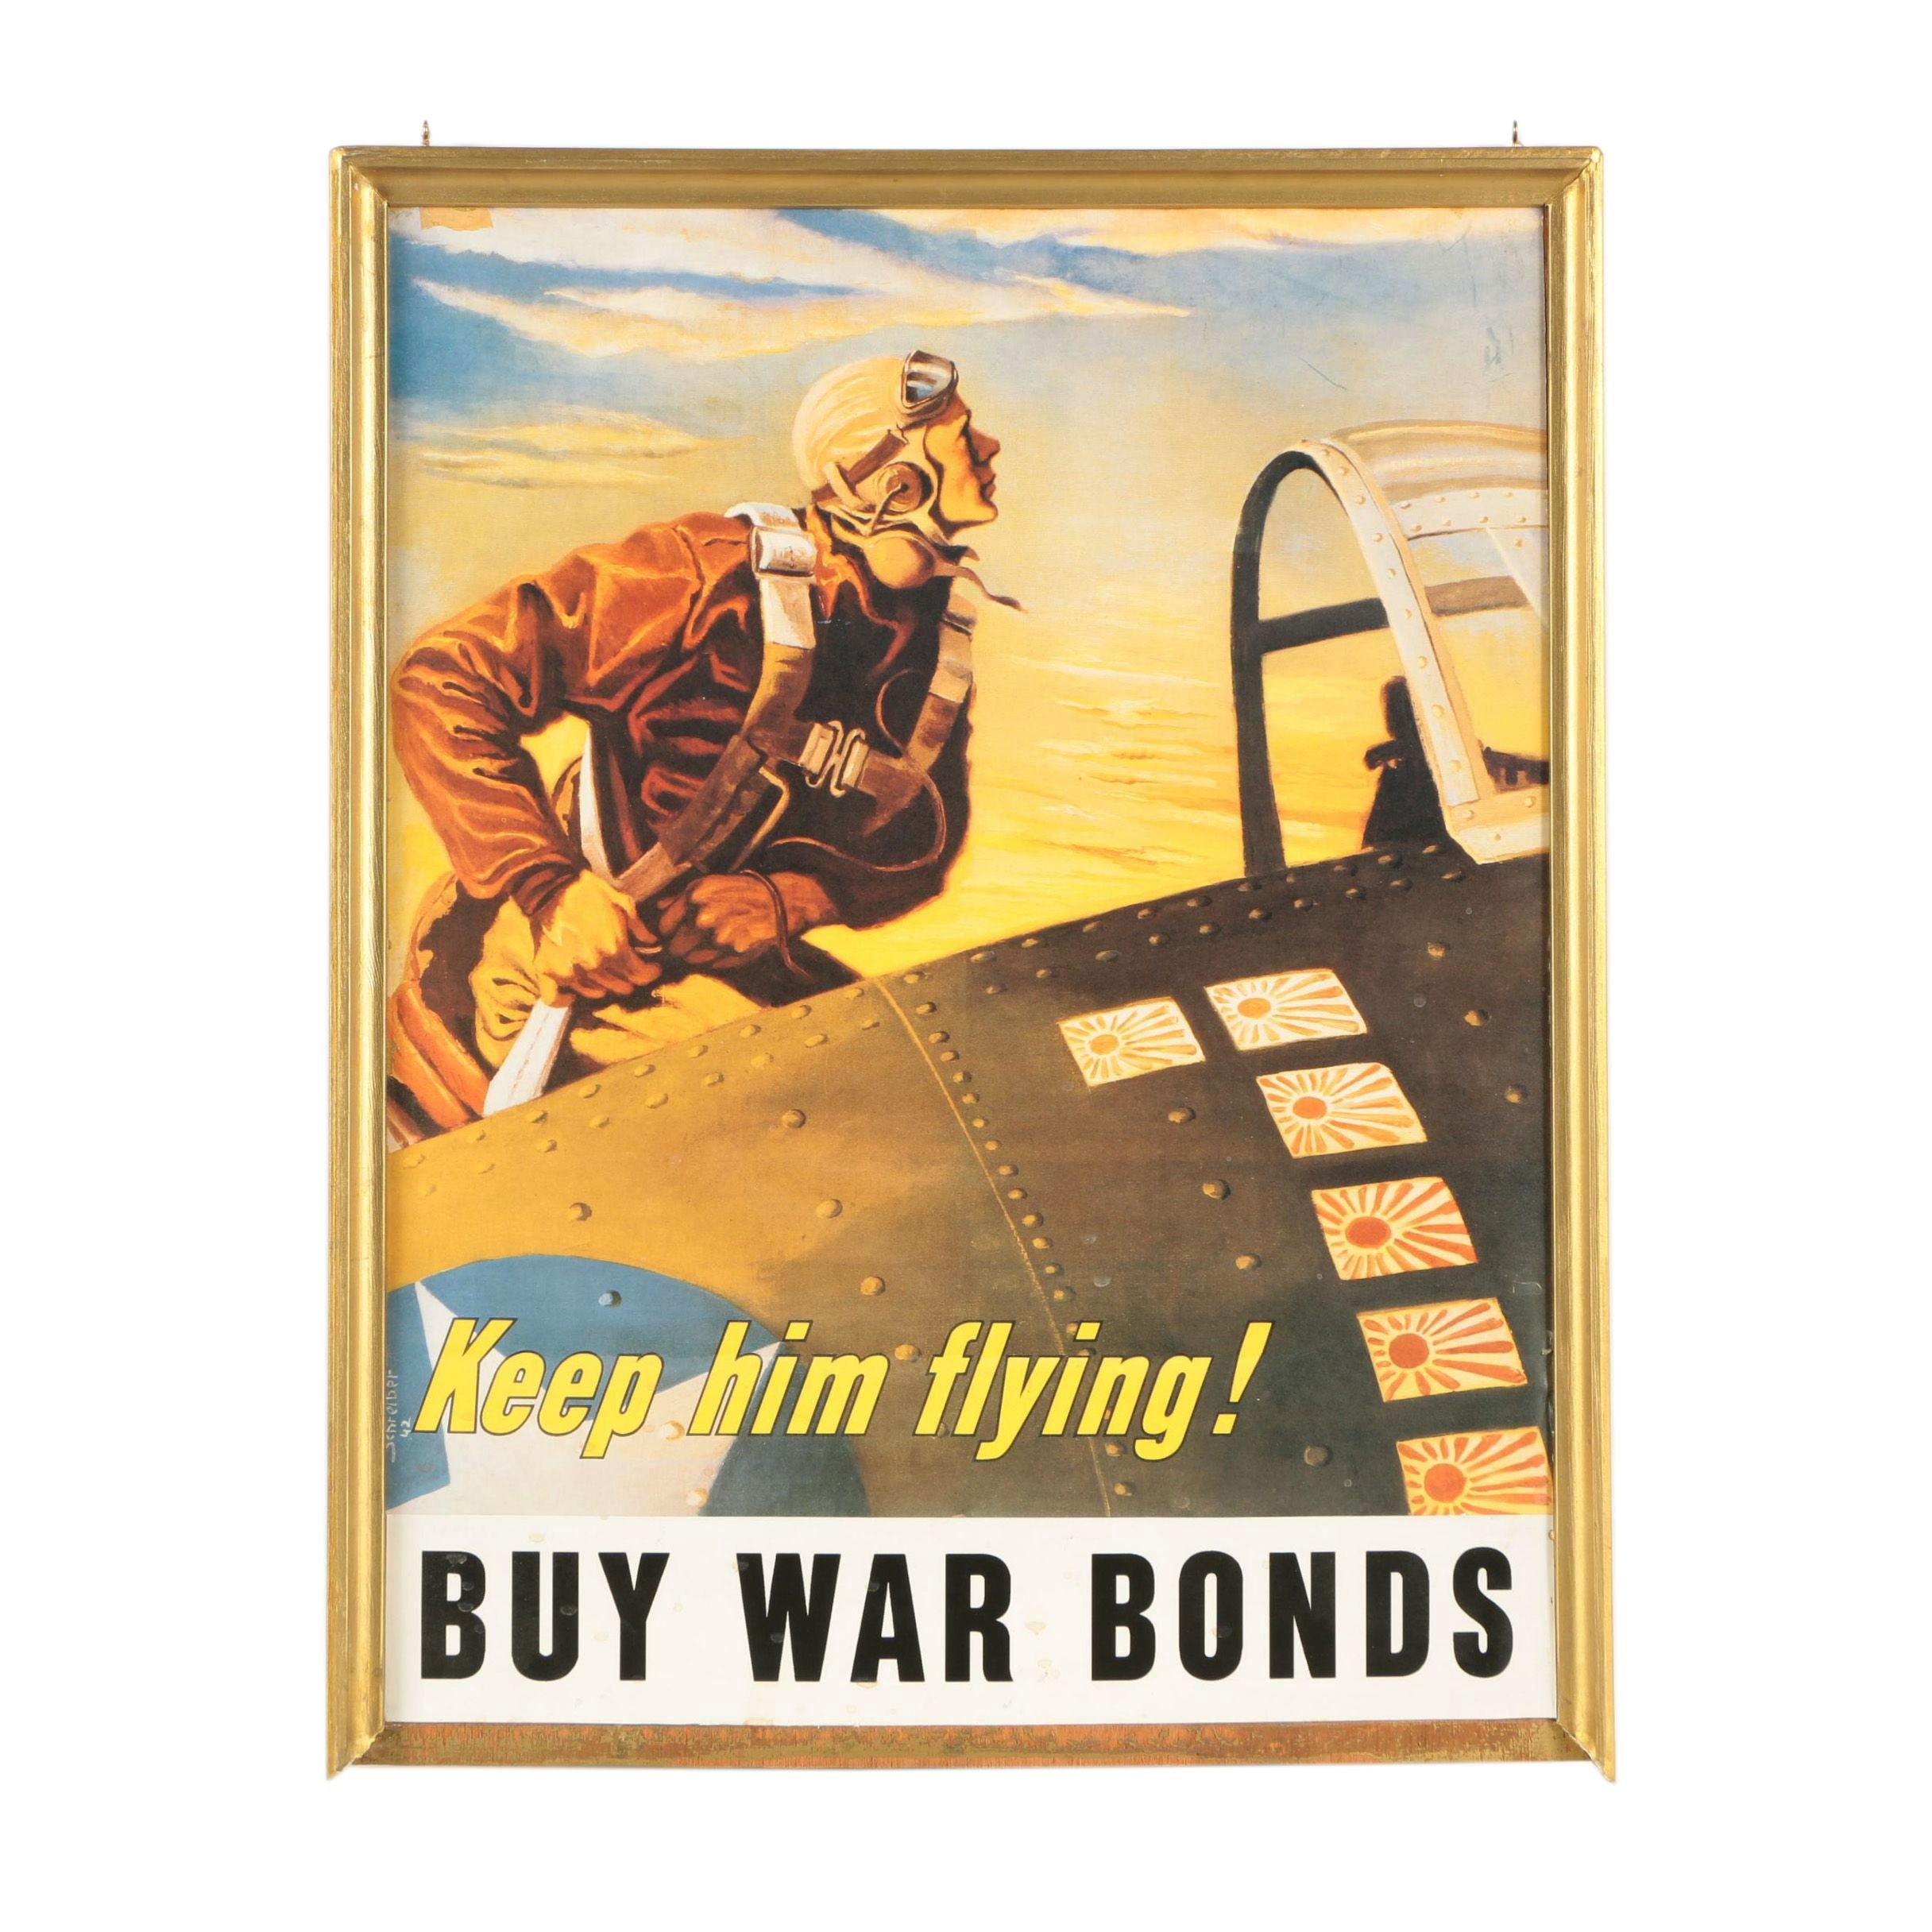 Offset Lithographic Reproduction Print of War Bonds Poster